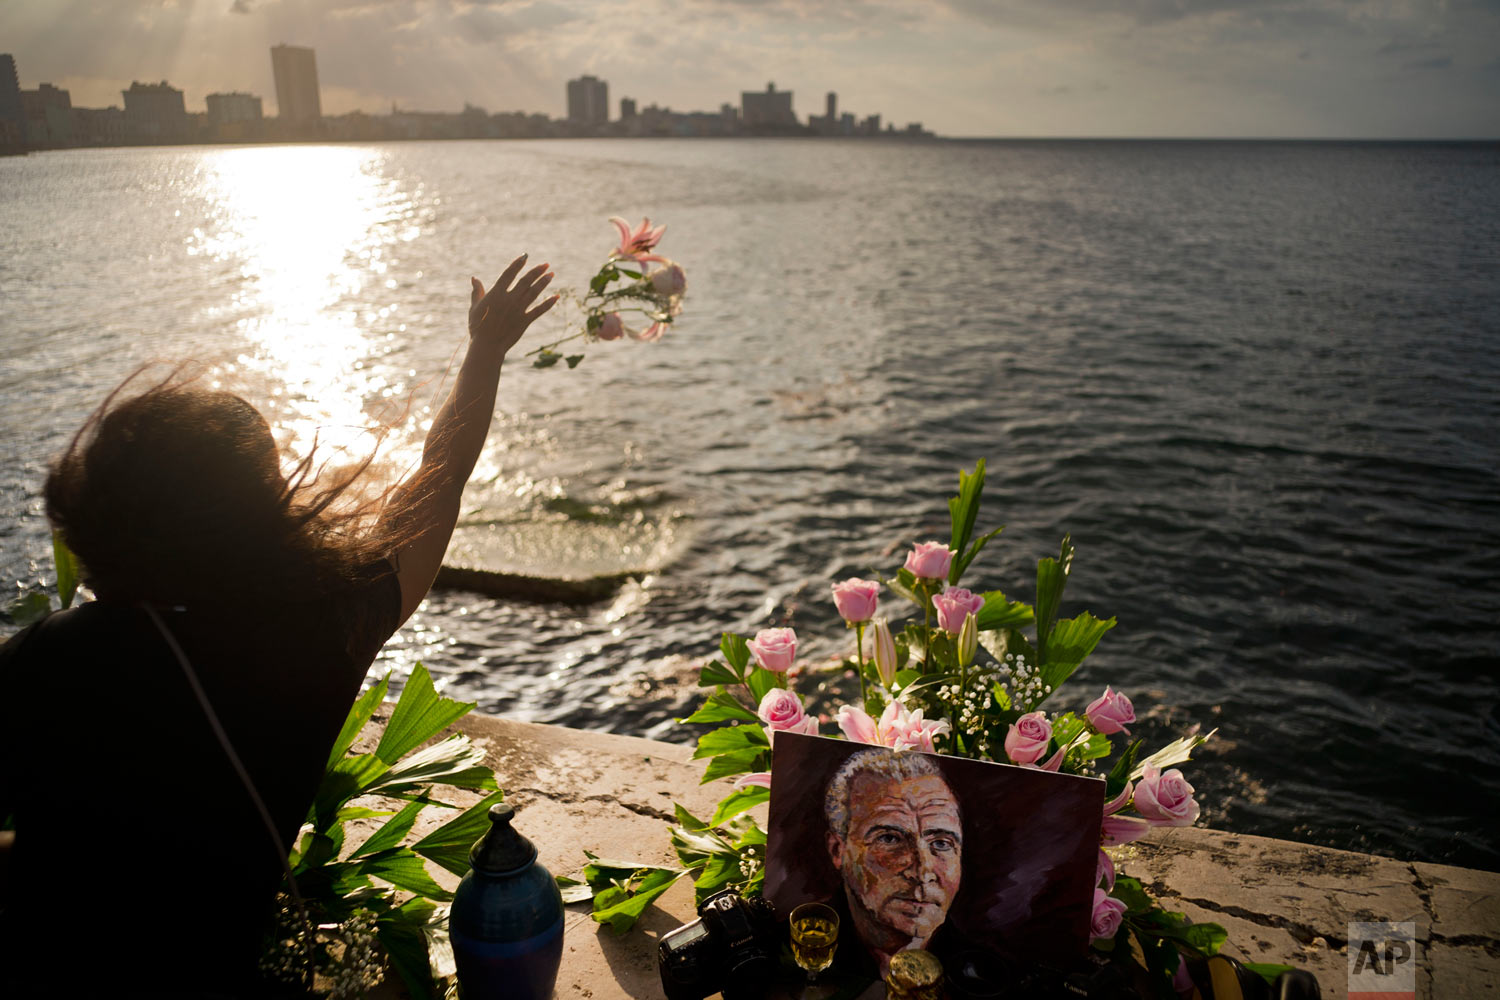 A woman throws flowers into the sea during a memorial service for late photojournalist Desmond Boylan, from the Malecon promenade where some of his ashes were also scattered into the water at sunset in Havana, Cuba, Jan. 1, 2019. Boylan, a photographer who covered war and conflict across the world before dedicating his life to documenting the daily joys and tribulations of life in Cuba for The Associated Press, died suddenly while on assignment on Dec. 29 in Havana. He was 54. (AP Photo/Ramon Espinosa)